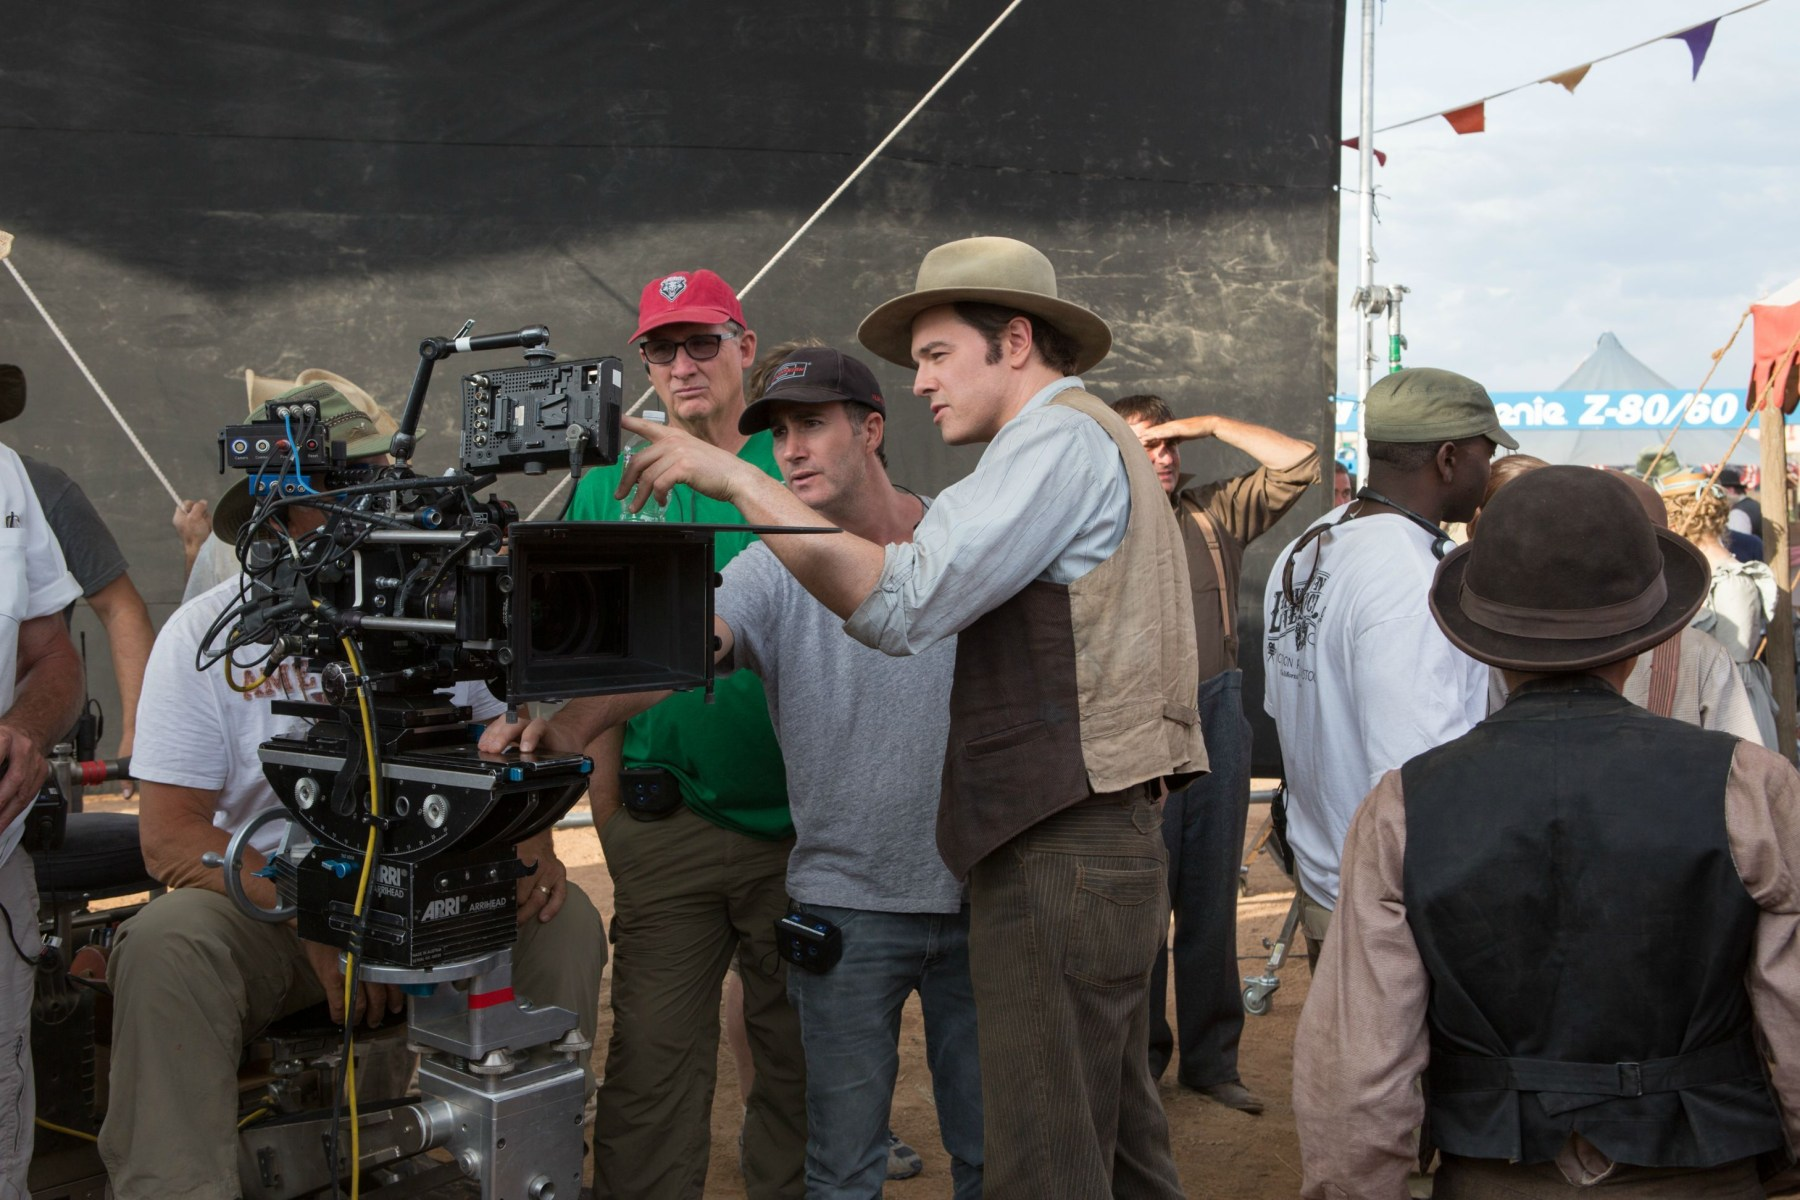 A Million Ways to Die in the West Behind the Scenes Photos & Tech Specs